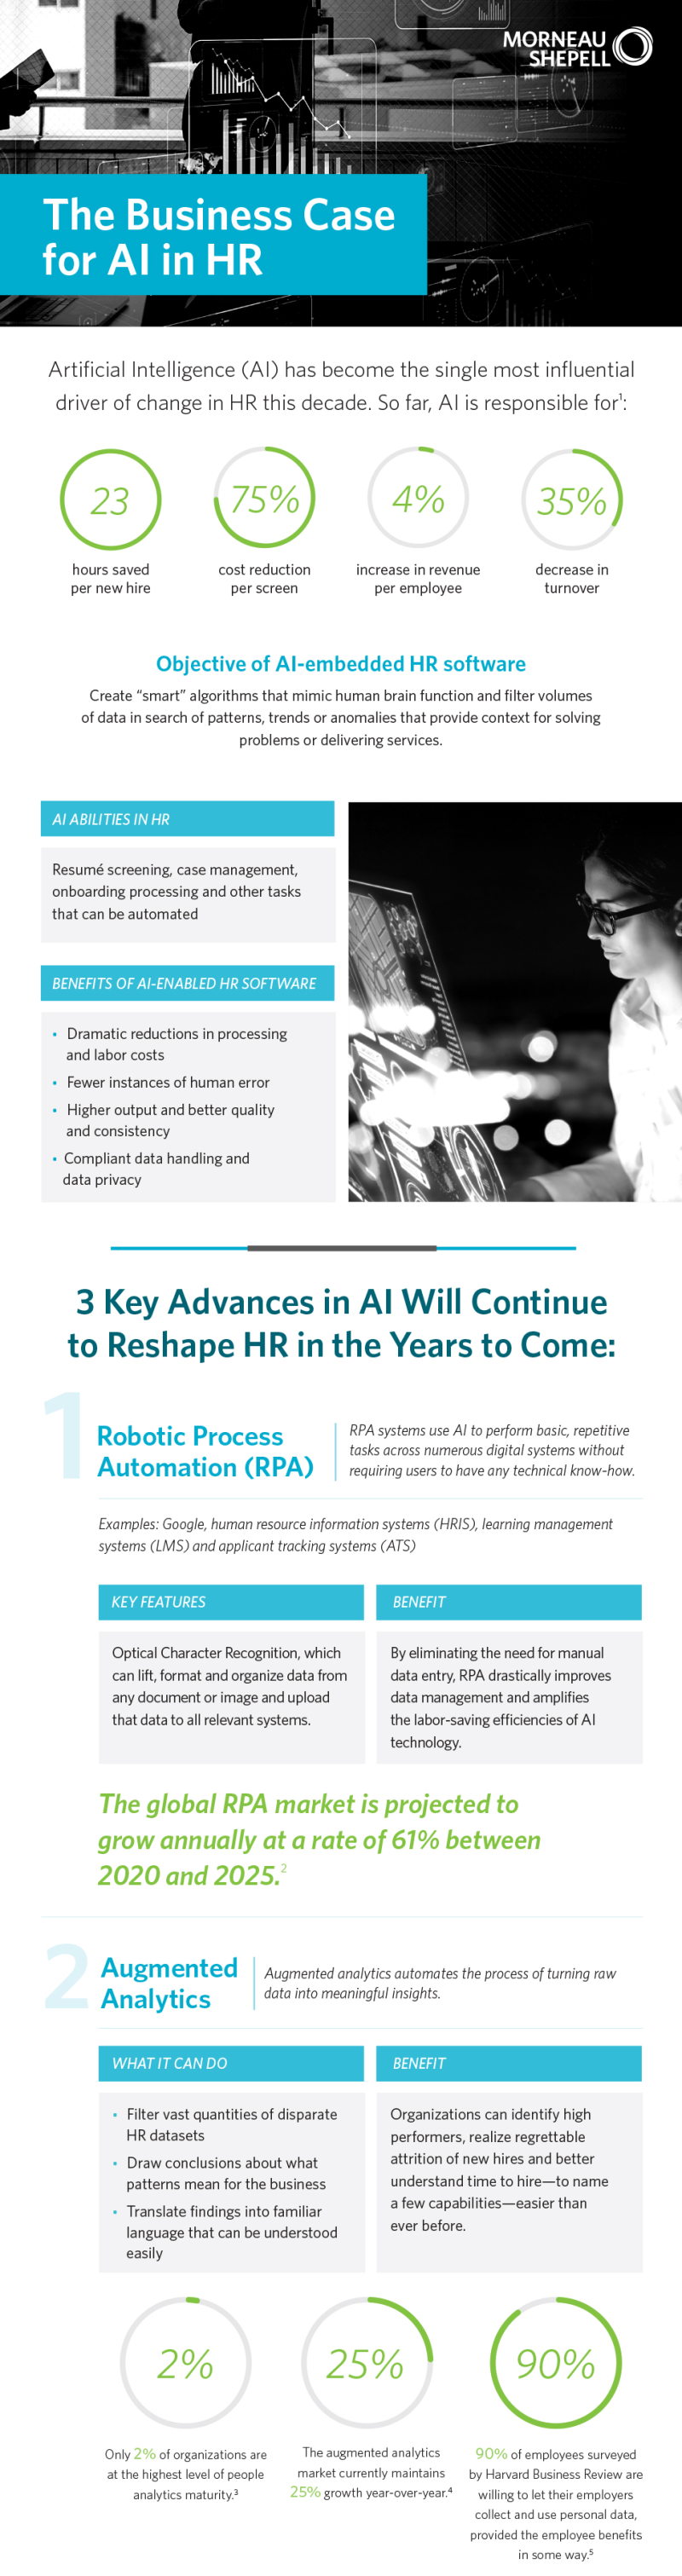 AI in HR infographic1